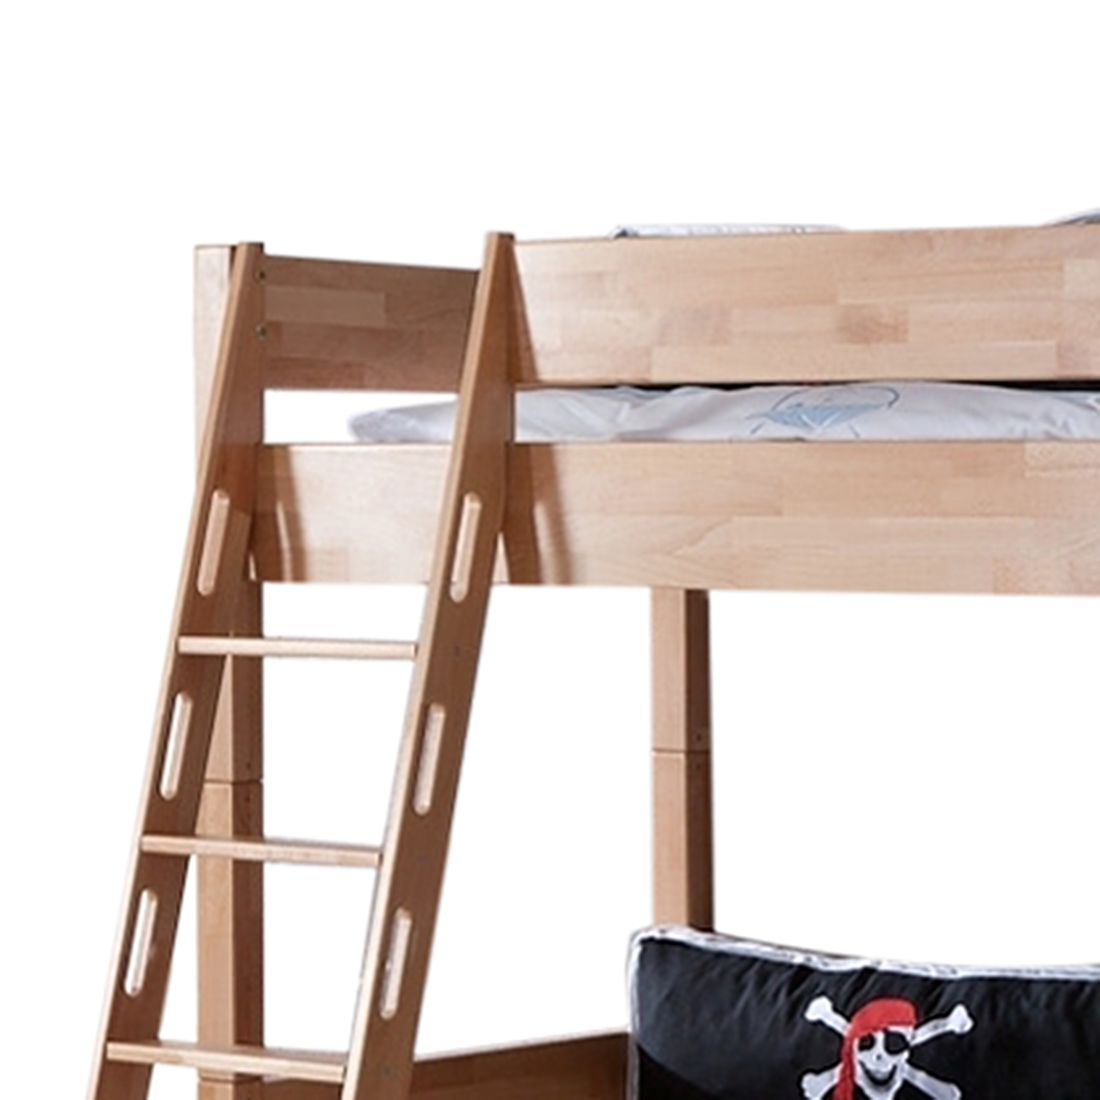 hochbett massivholz buche latest cool hochbett spielbett kinderbett mit rutsche turm vorhang x. Black Bedroom Furniture Sets. Home Design Ideas